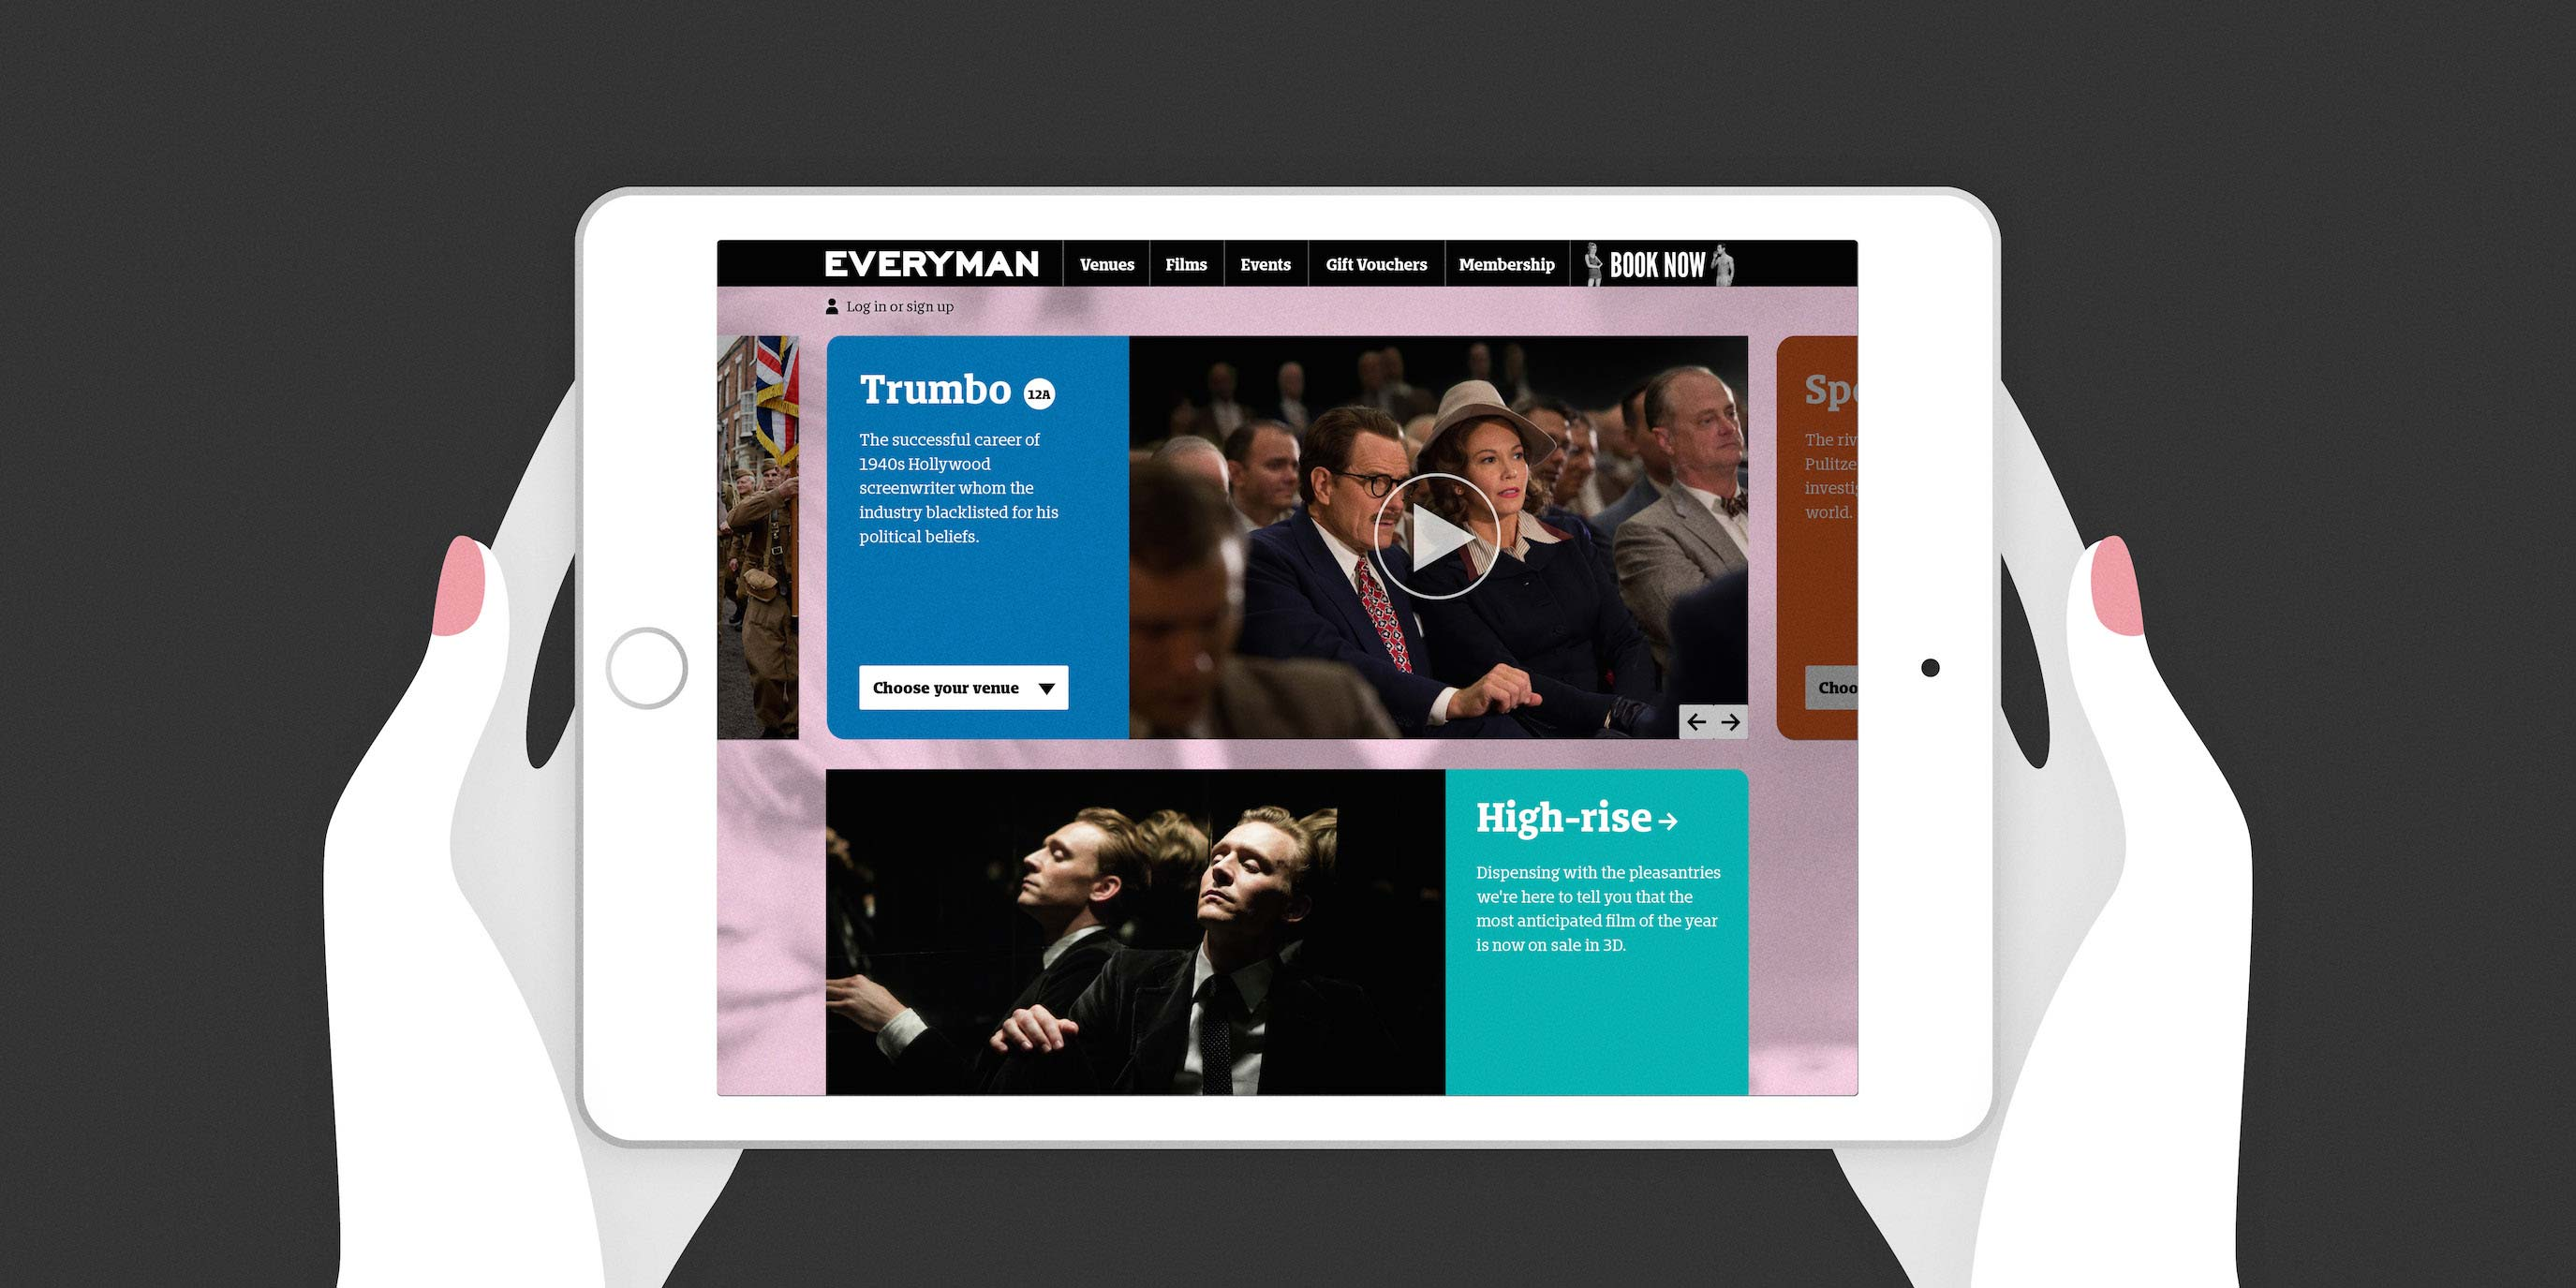 Everyman Cinema Website design by Human After All